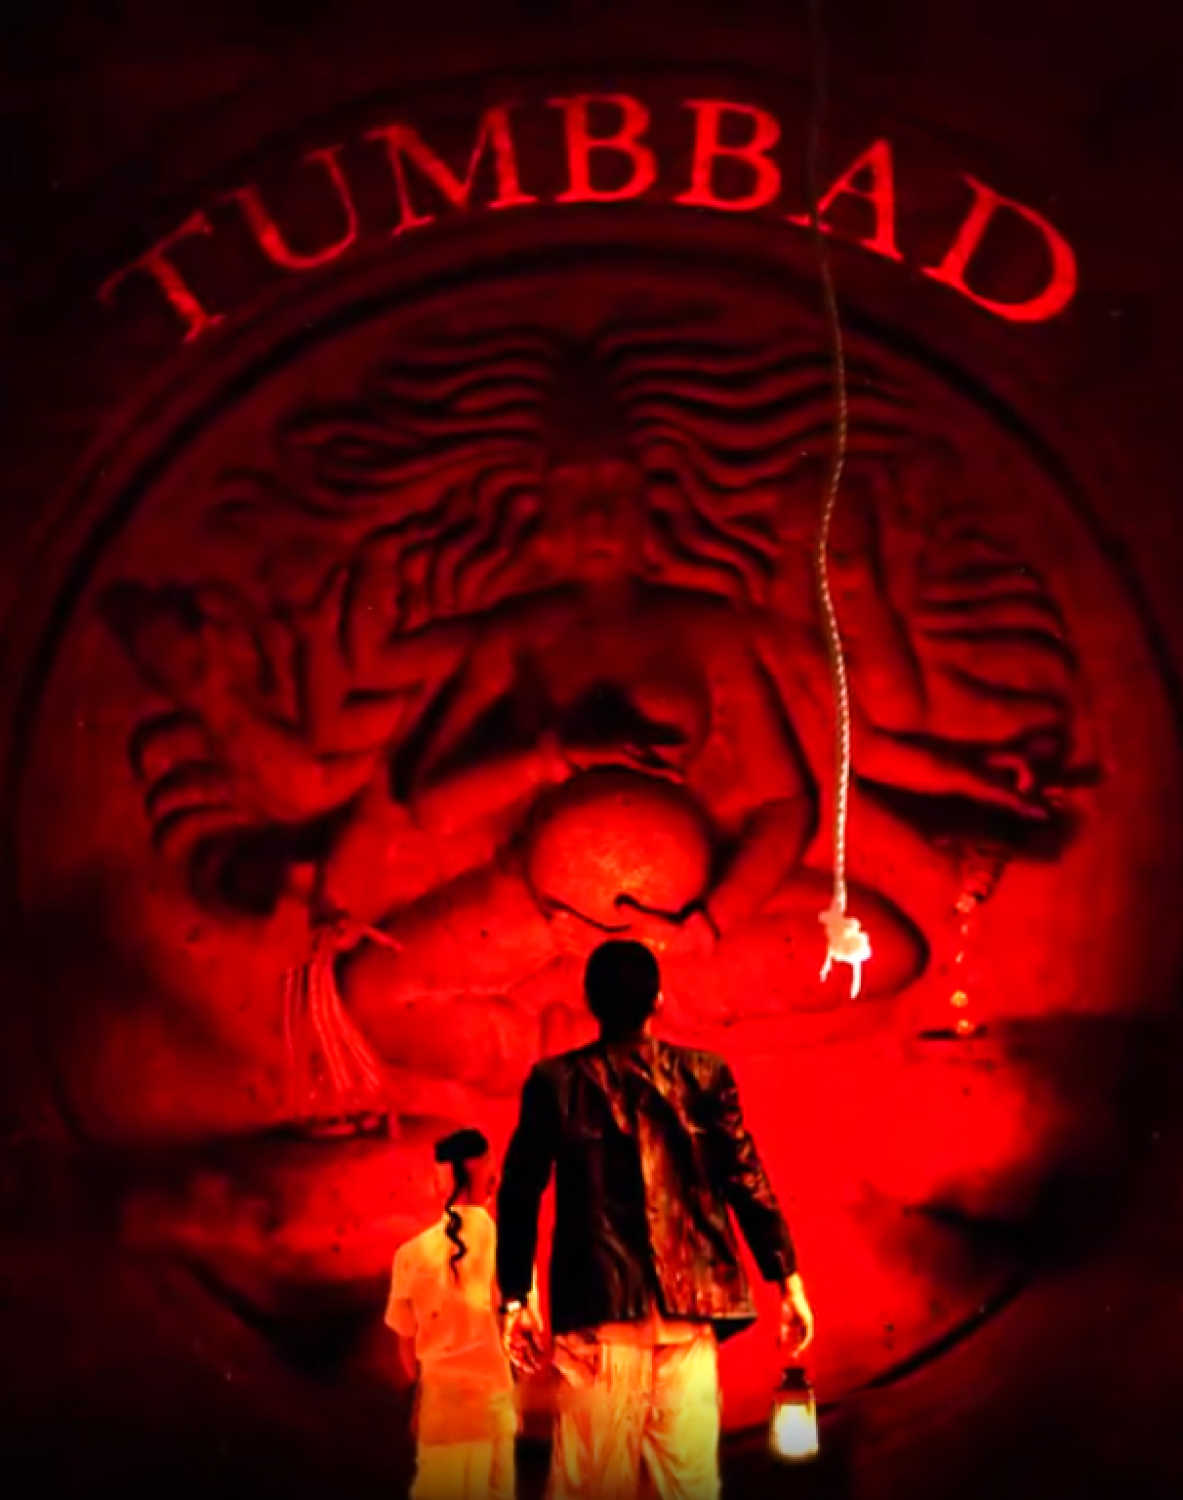 Tumbbad 2018 Hindi WEBRip 720p 1.3GB AAC 5.1 ESubs MKV